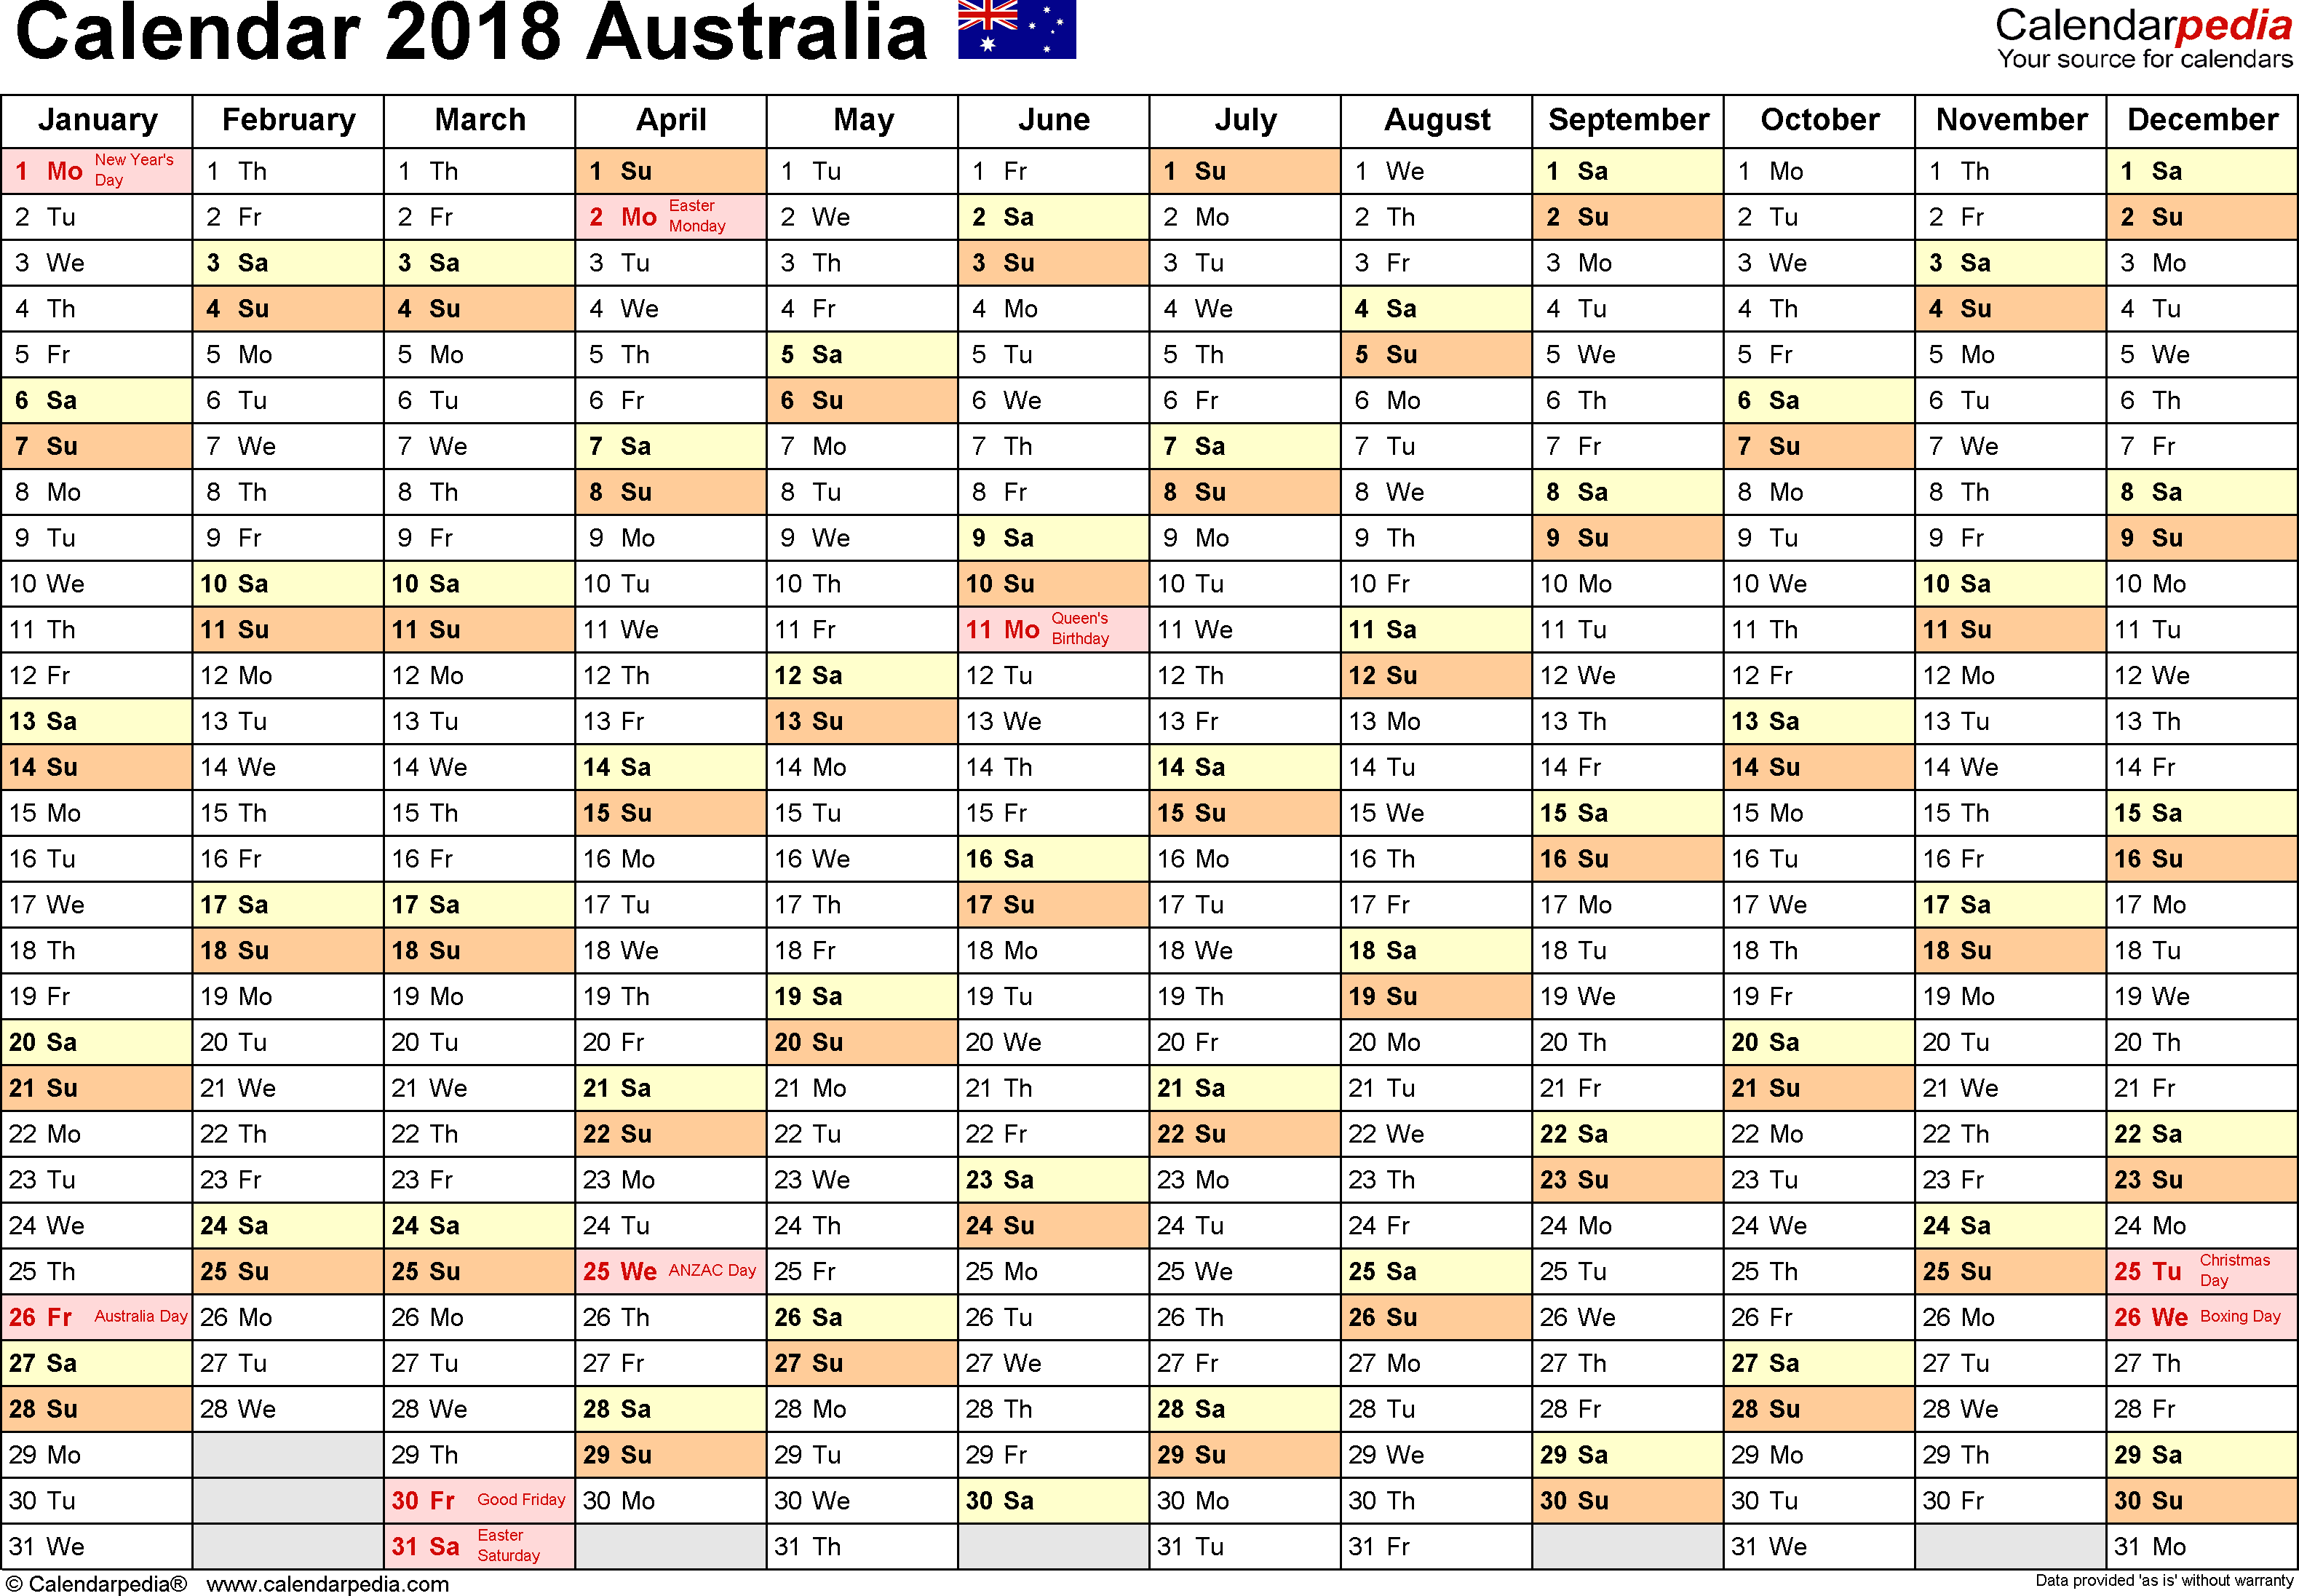 Template 2: 2018 Calendar Australia for Word, months horizontally, 1 page, landscape orientation